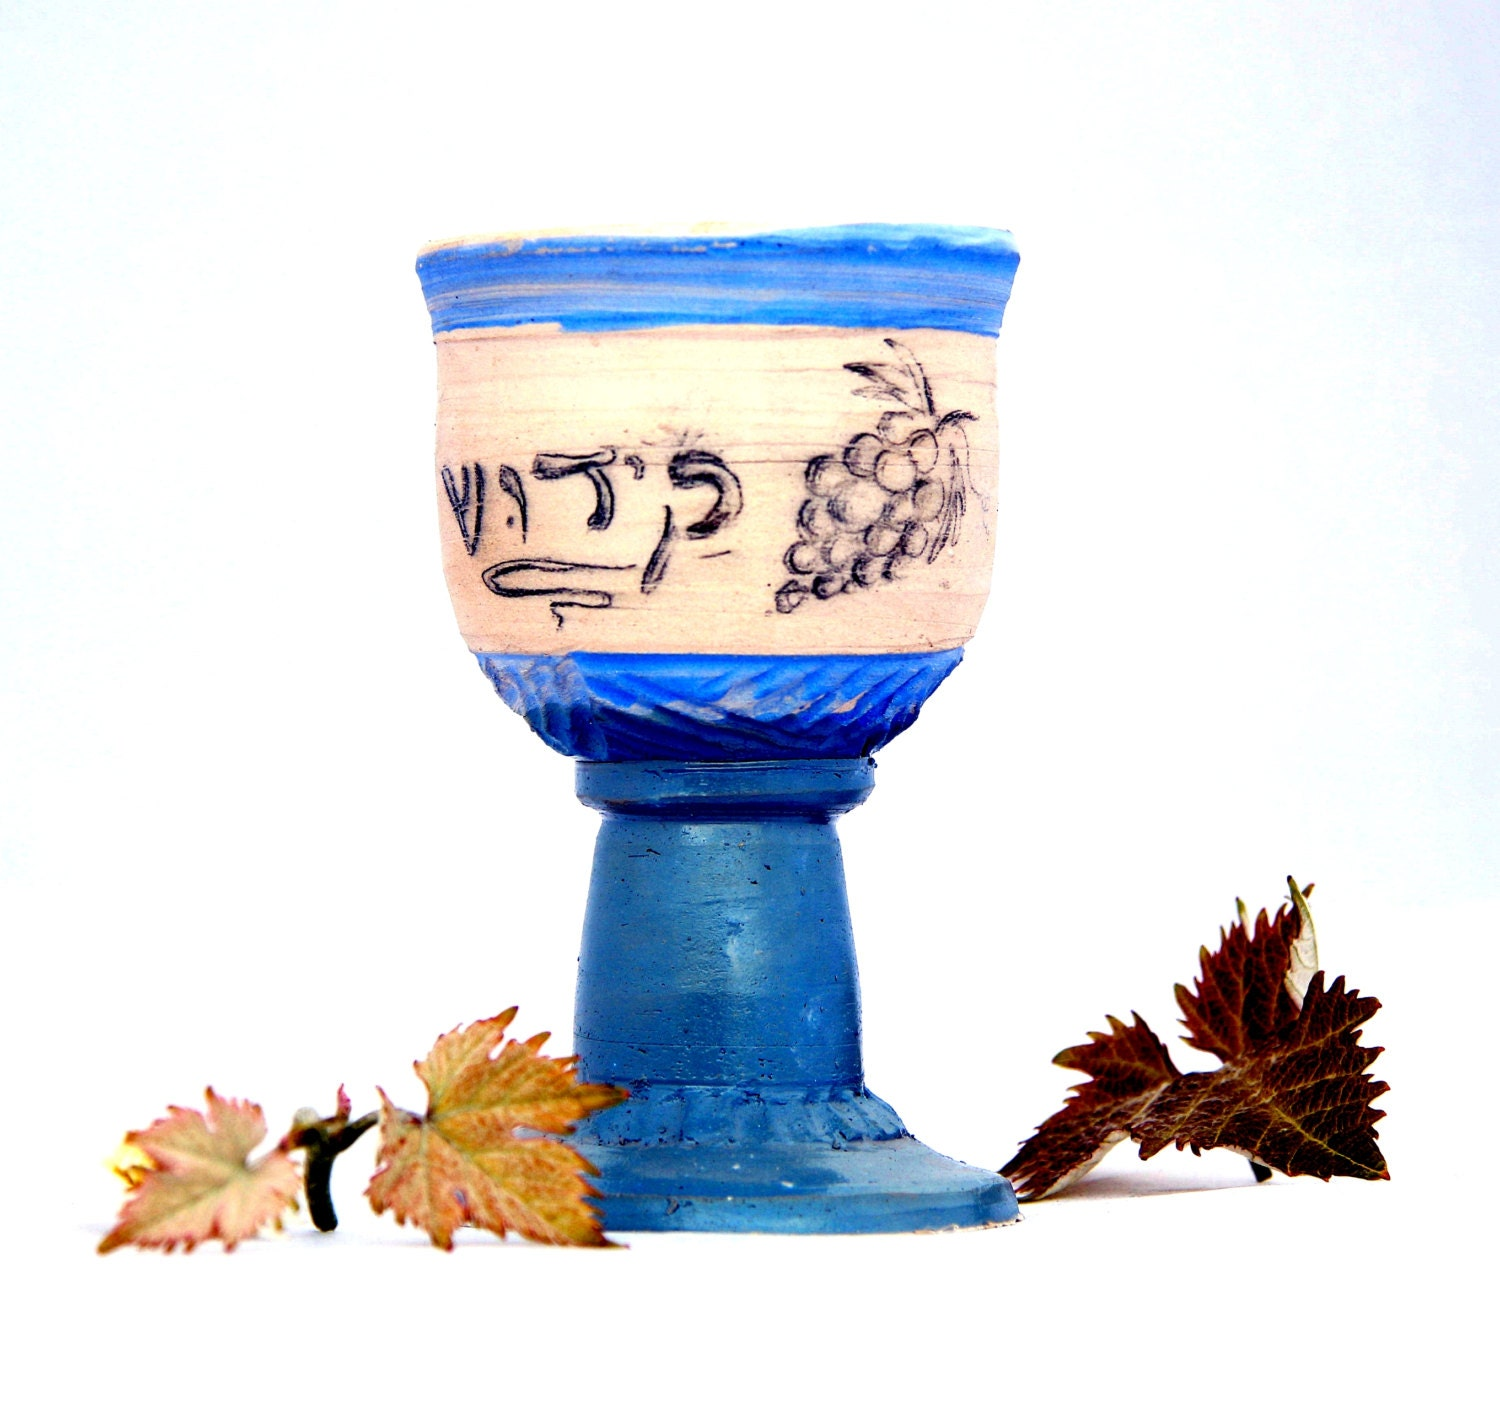 how to say cheers in hebrew